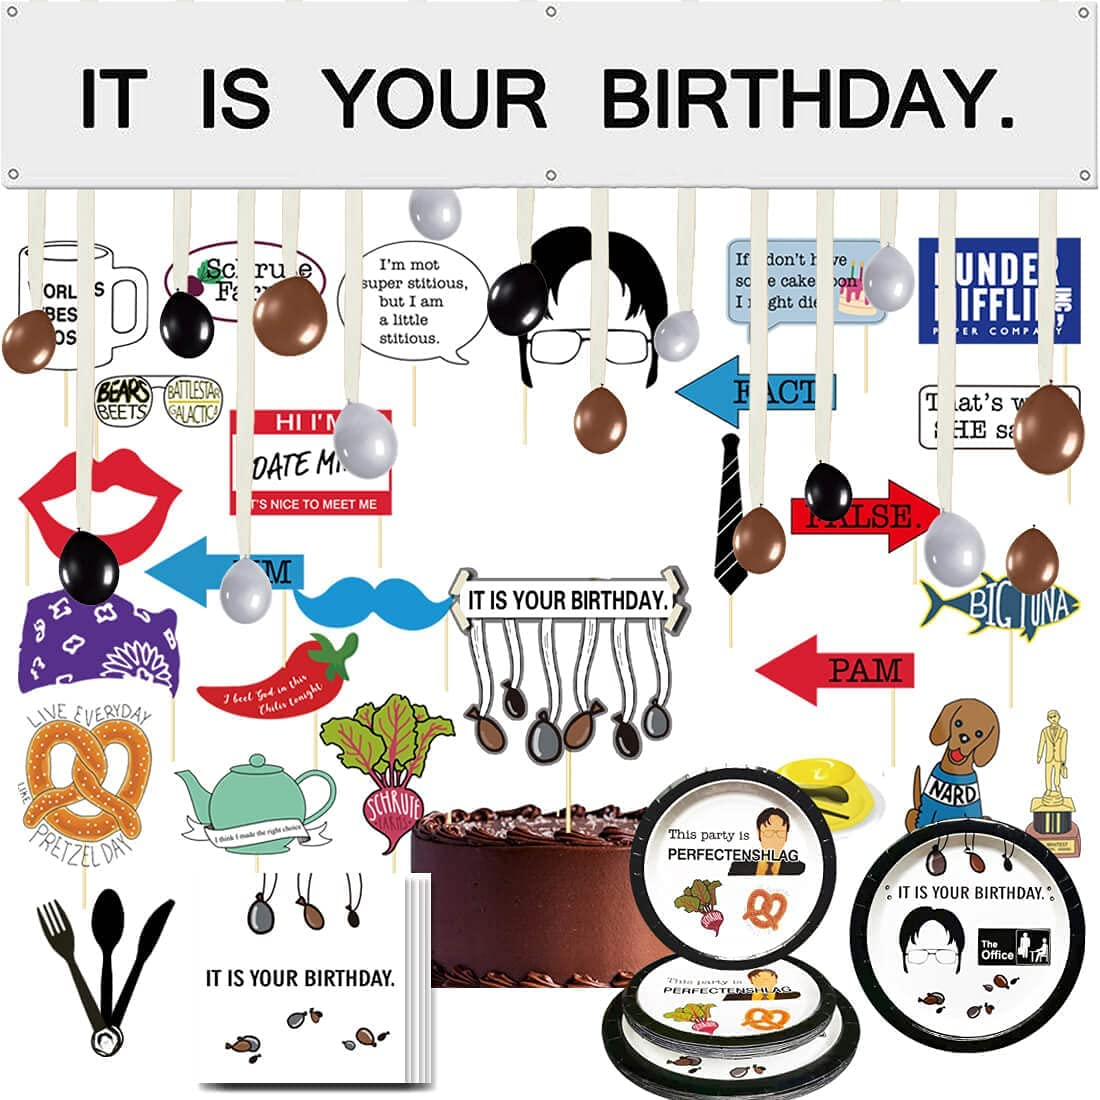 It is Your Birthday Banner, The Office Dwight Theme Infamous Husband Birthday Photo Booth Props Party Decorations The Office Cake Topper Party Merchandise by Dwight K. Schrute Baby Boy 16 Guests